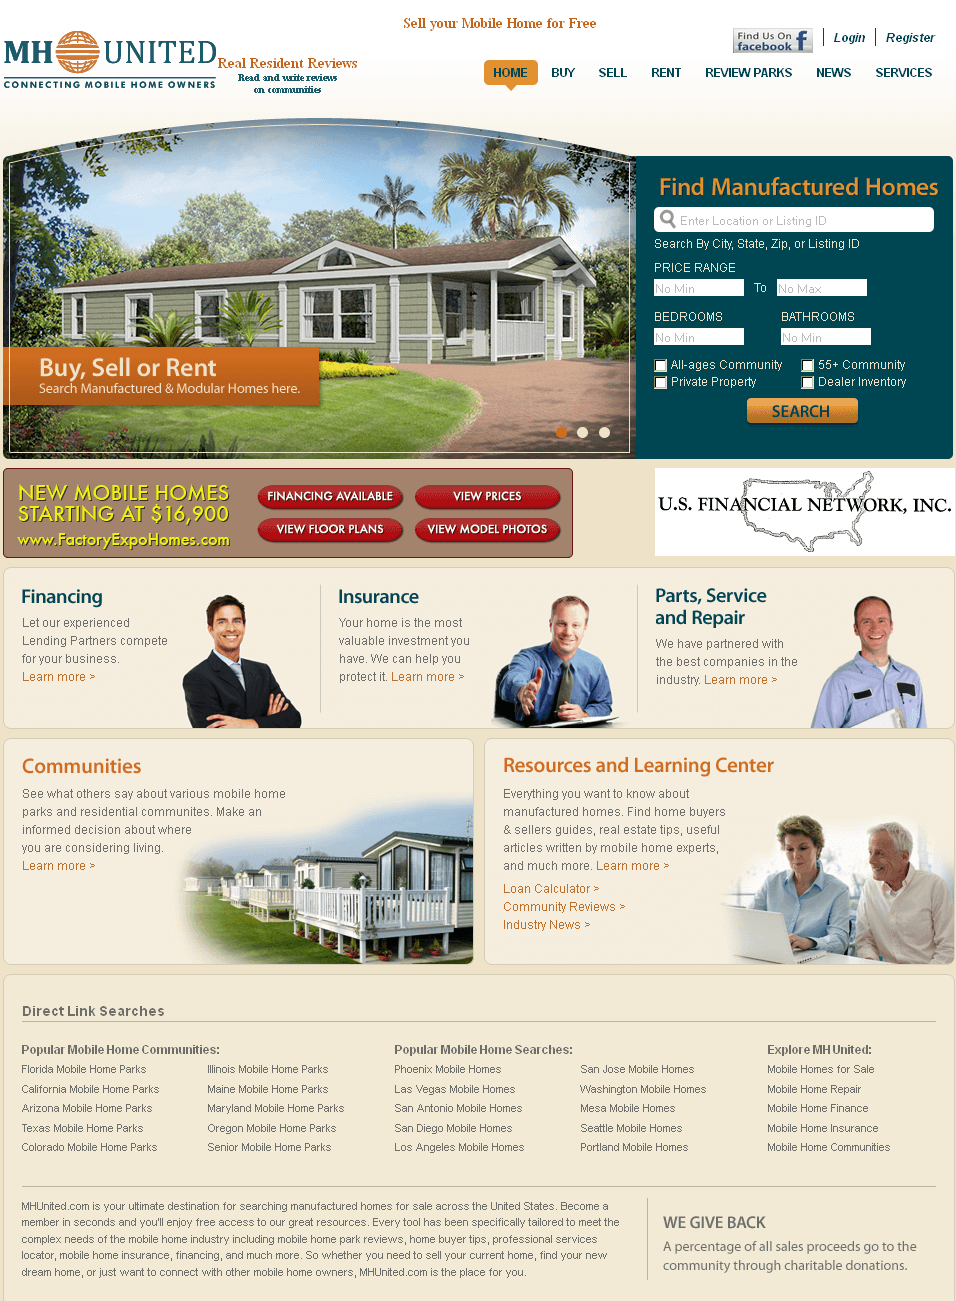 Real Estate Website in PHP 'MHUNITED' – Marketplace to Buy, Sell, & Rent